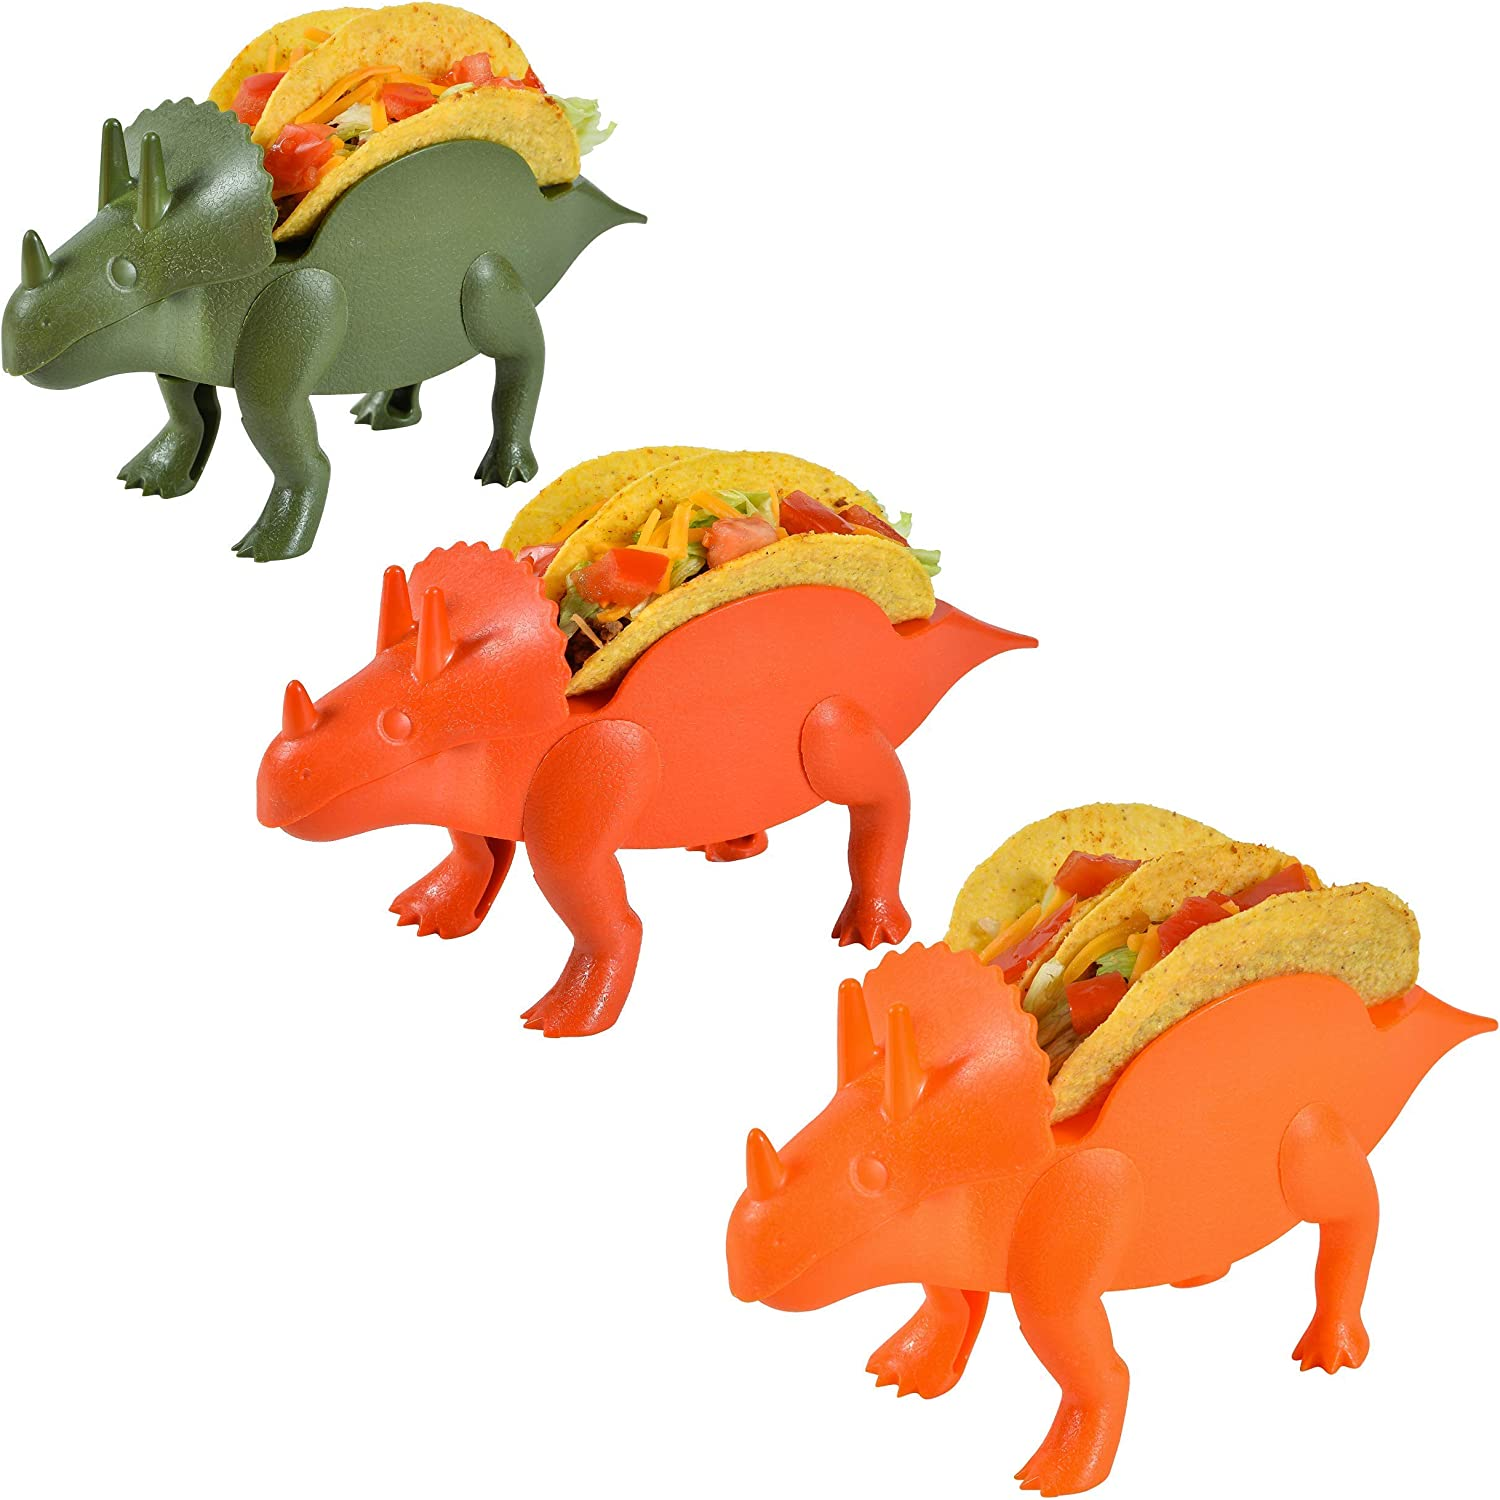 Jurassic Taco Holders - Red, Orange and Green Triceratops Dinosaur Food Server - Holds 6 Tortilla Shells - Non-BPA & Dishwasher Safe Plastic Containers - Novelty Kitchen Gift Ideas